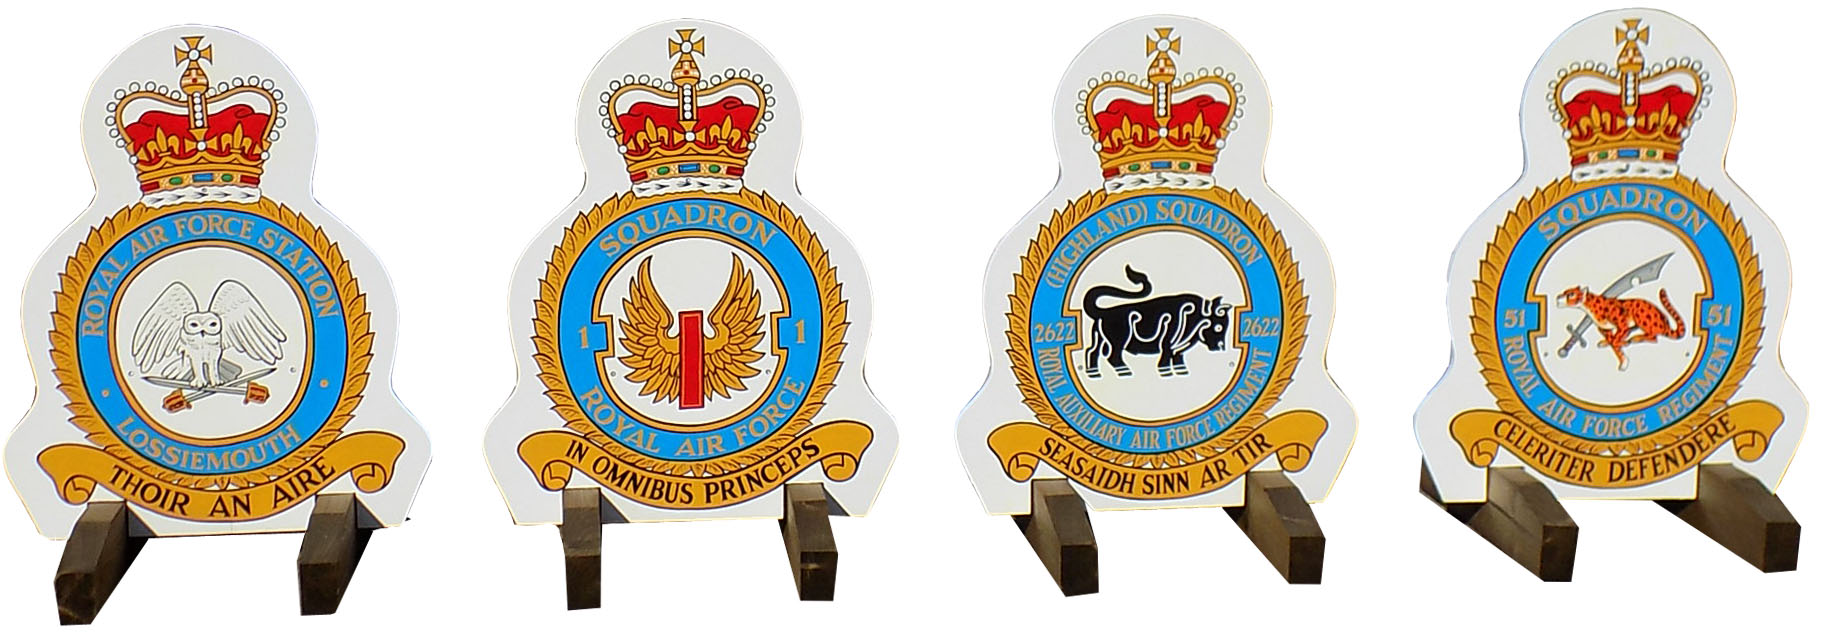 RAF Lossimouth Crest fillers